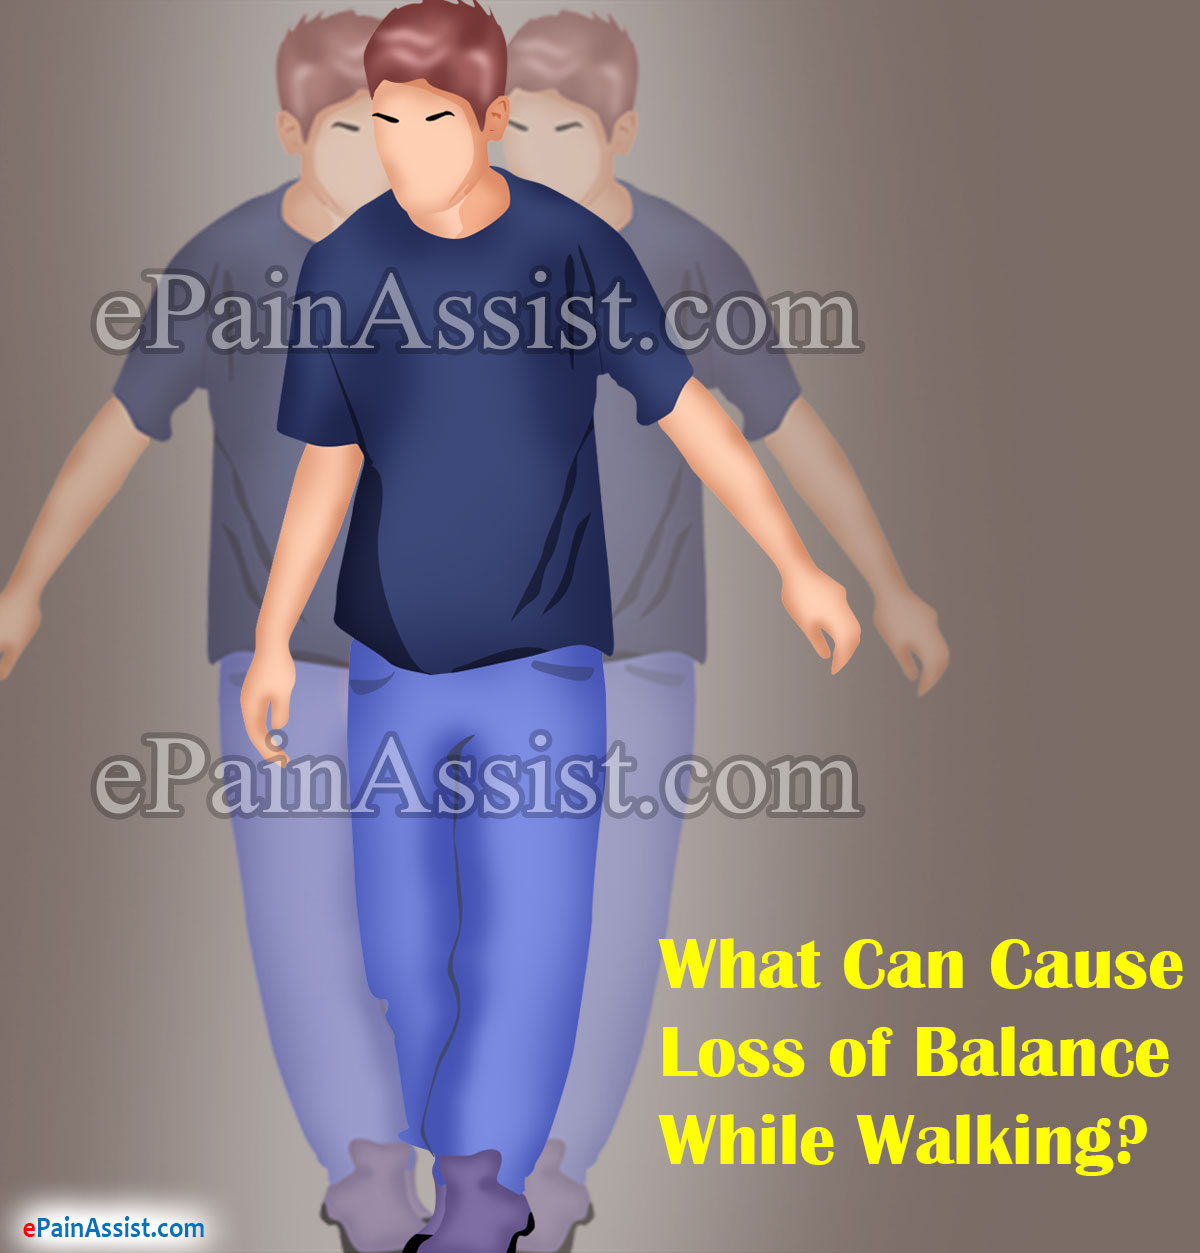 What Can Cause Loss of Balance While Walking?